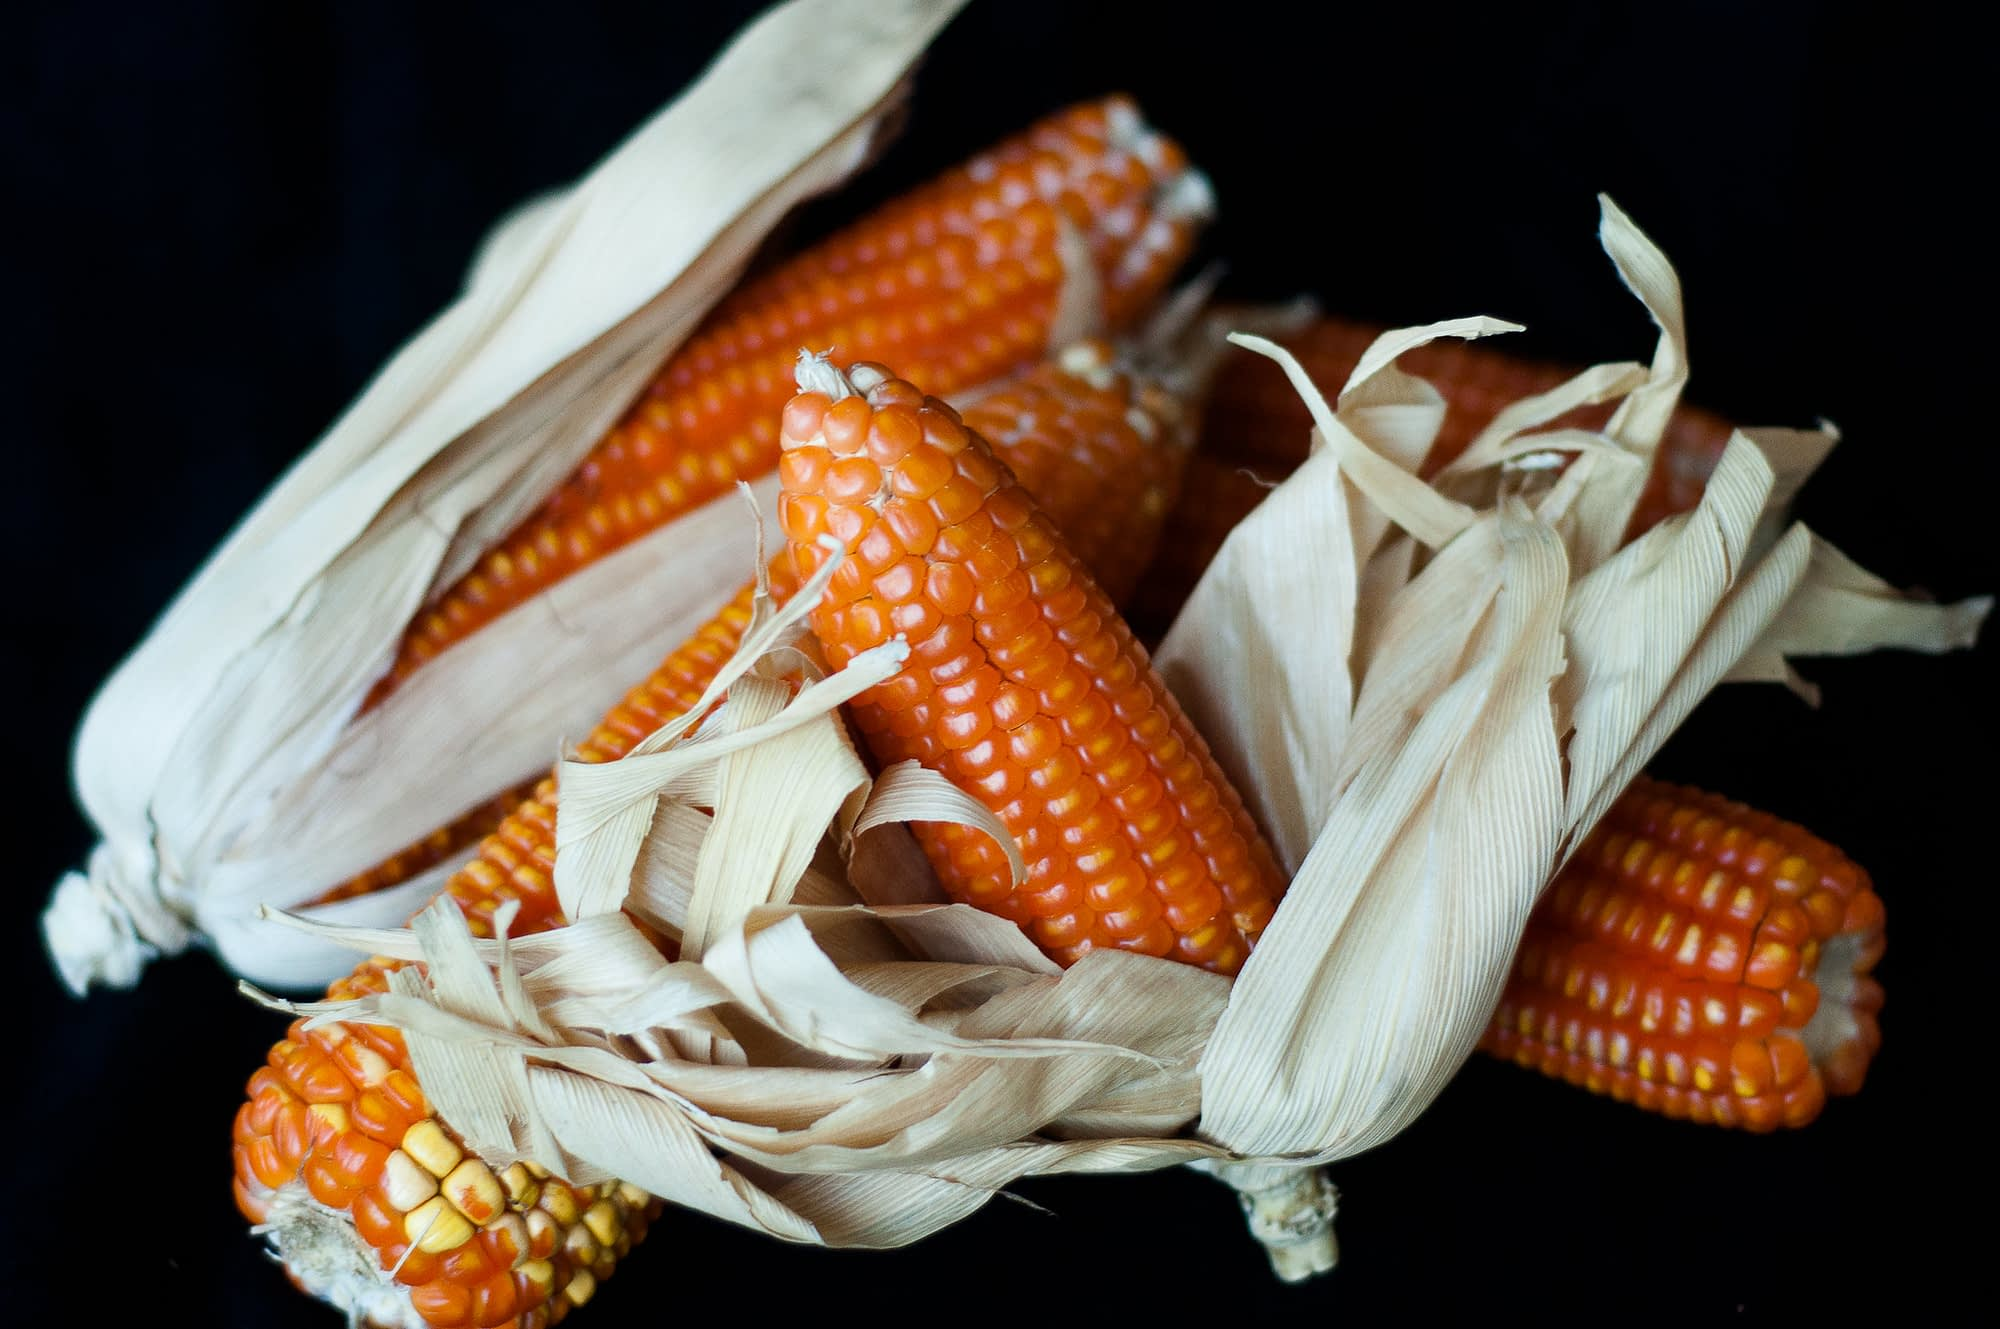 Unlike white maize varieties, vitamin A maize is rich in beta-carotene, giving it a distinctive orange color. This biofortified variety provides consumers with up to 40% of their daily vitamin A needs. (Photo: HarvestPlus/Joslin Isaacson)